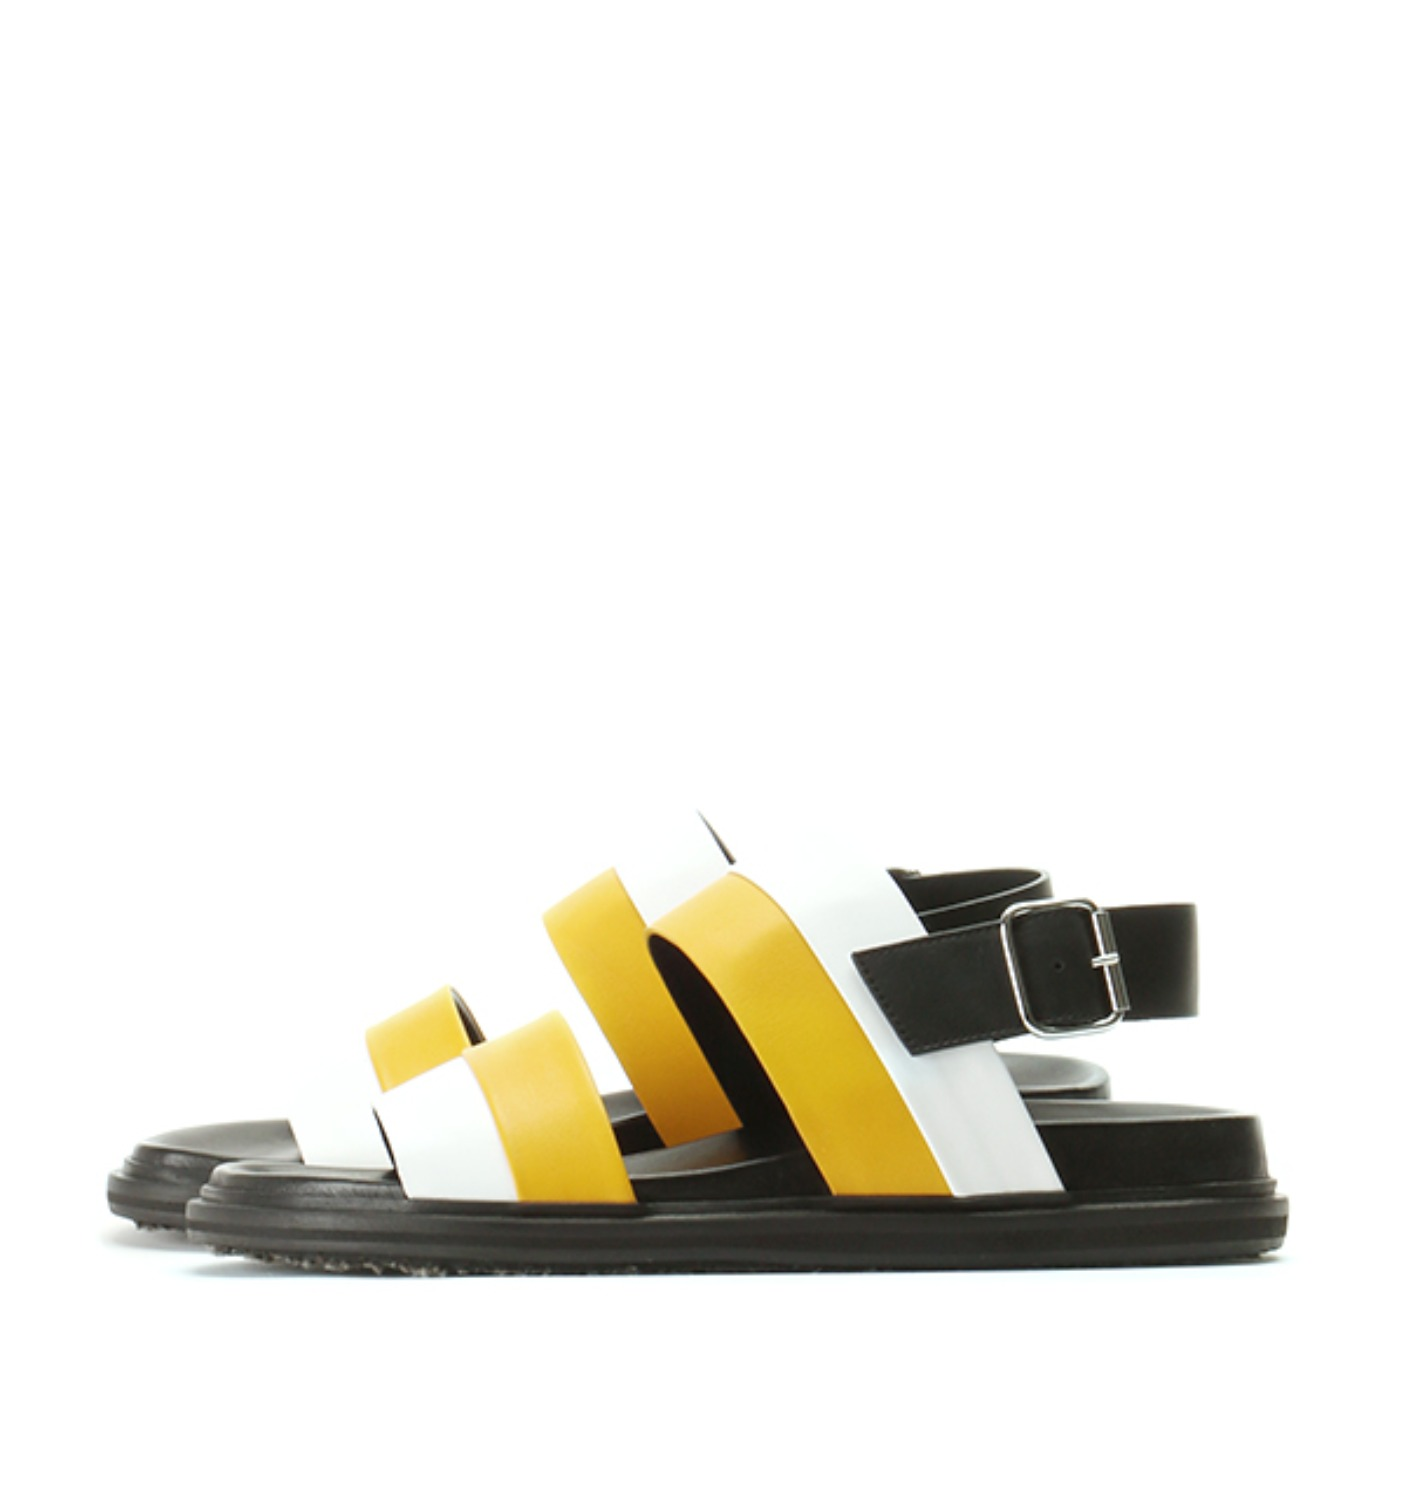 BI-COLORED CALFSKIN SANDAL YELLOW M24WP0019 (SY0366)